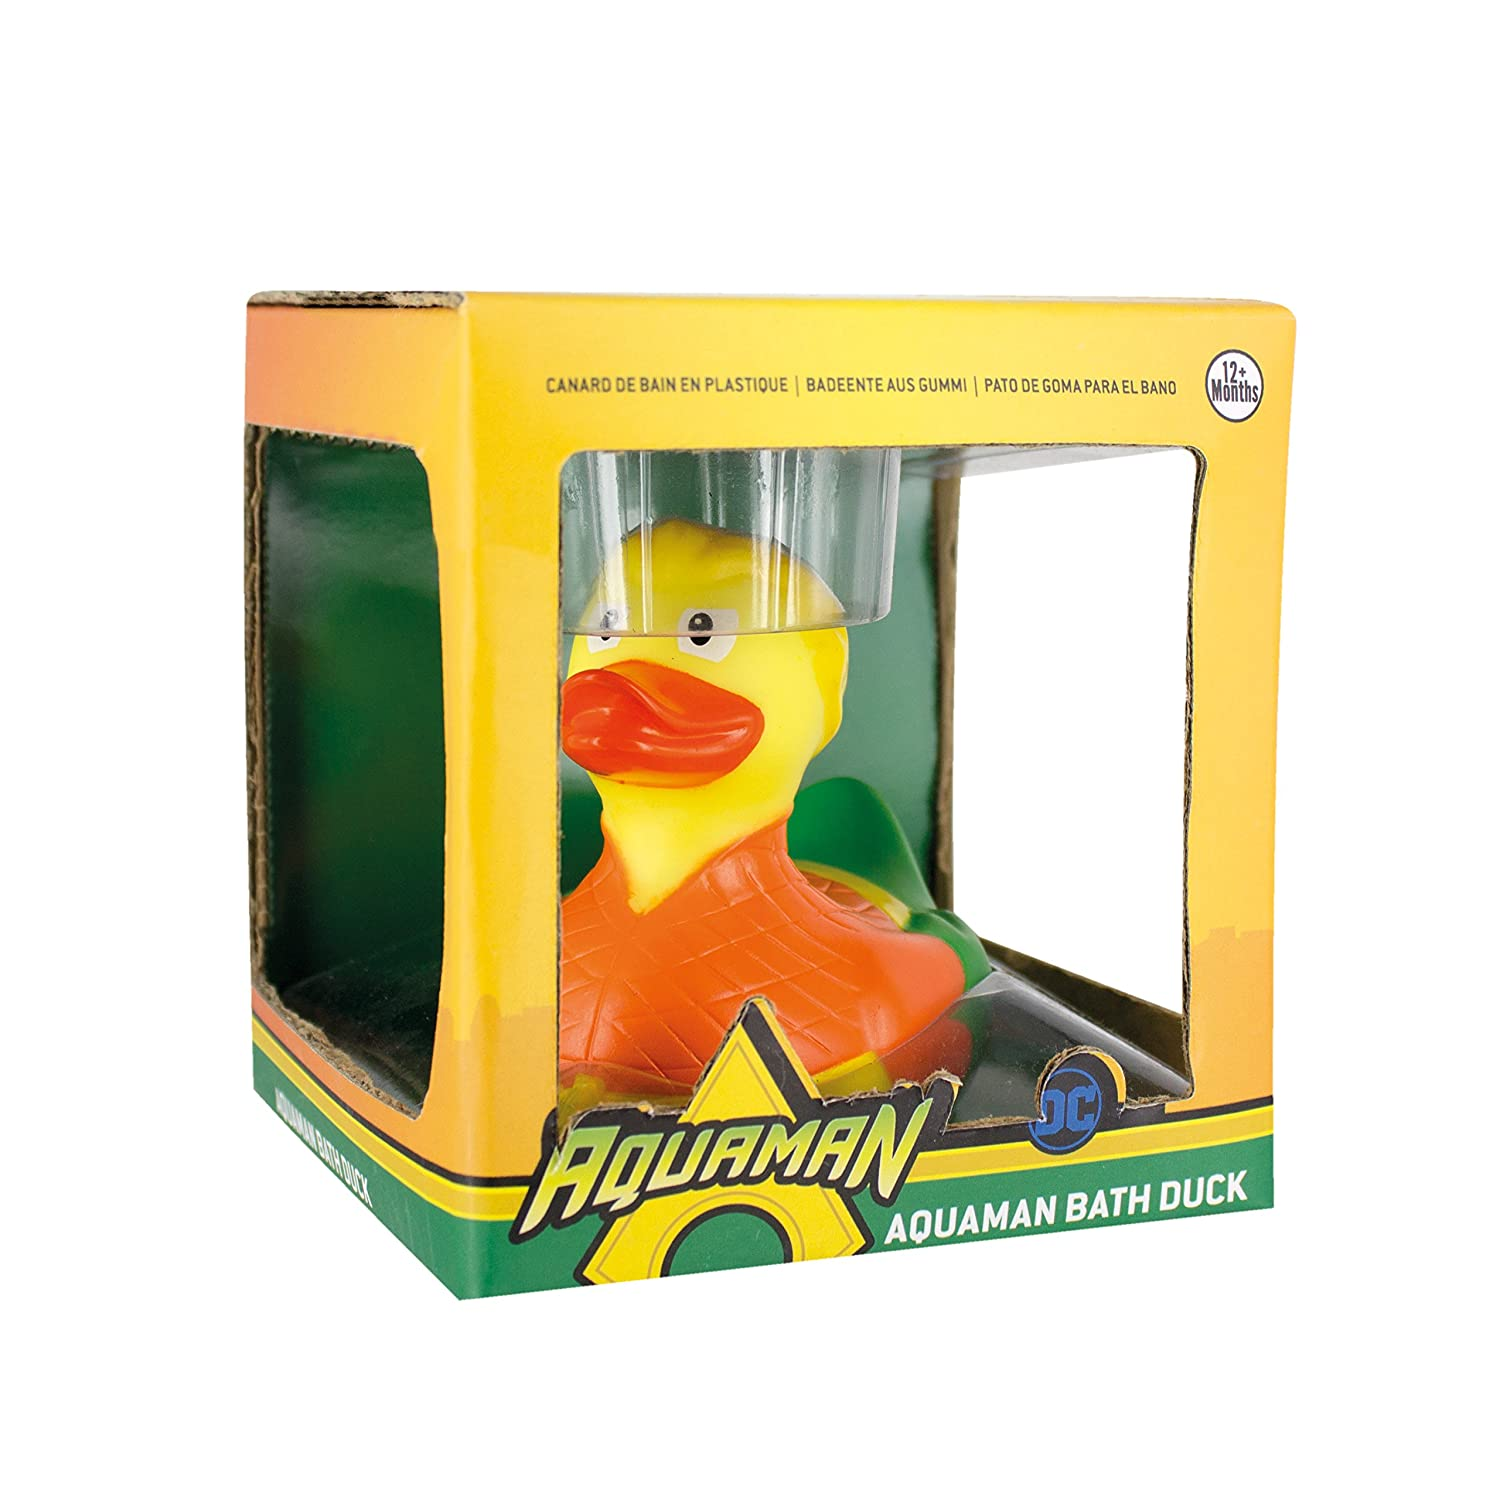 Officially Licensed DC Comics Product Paladone PP4054DC Novelty Bath Toy Duck Aquaman Bath Duck